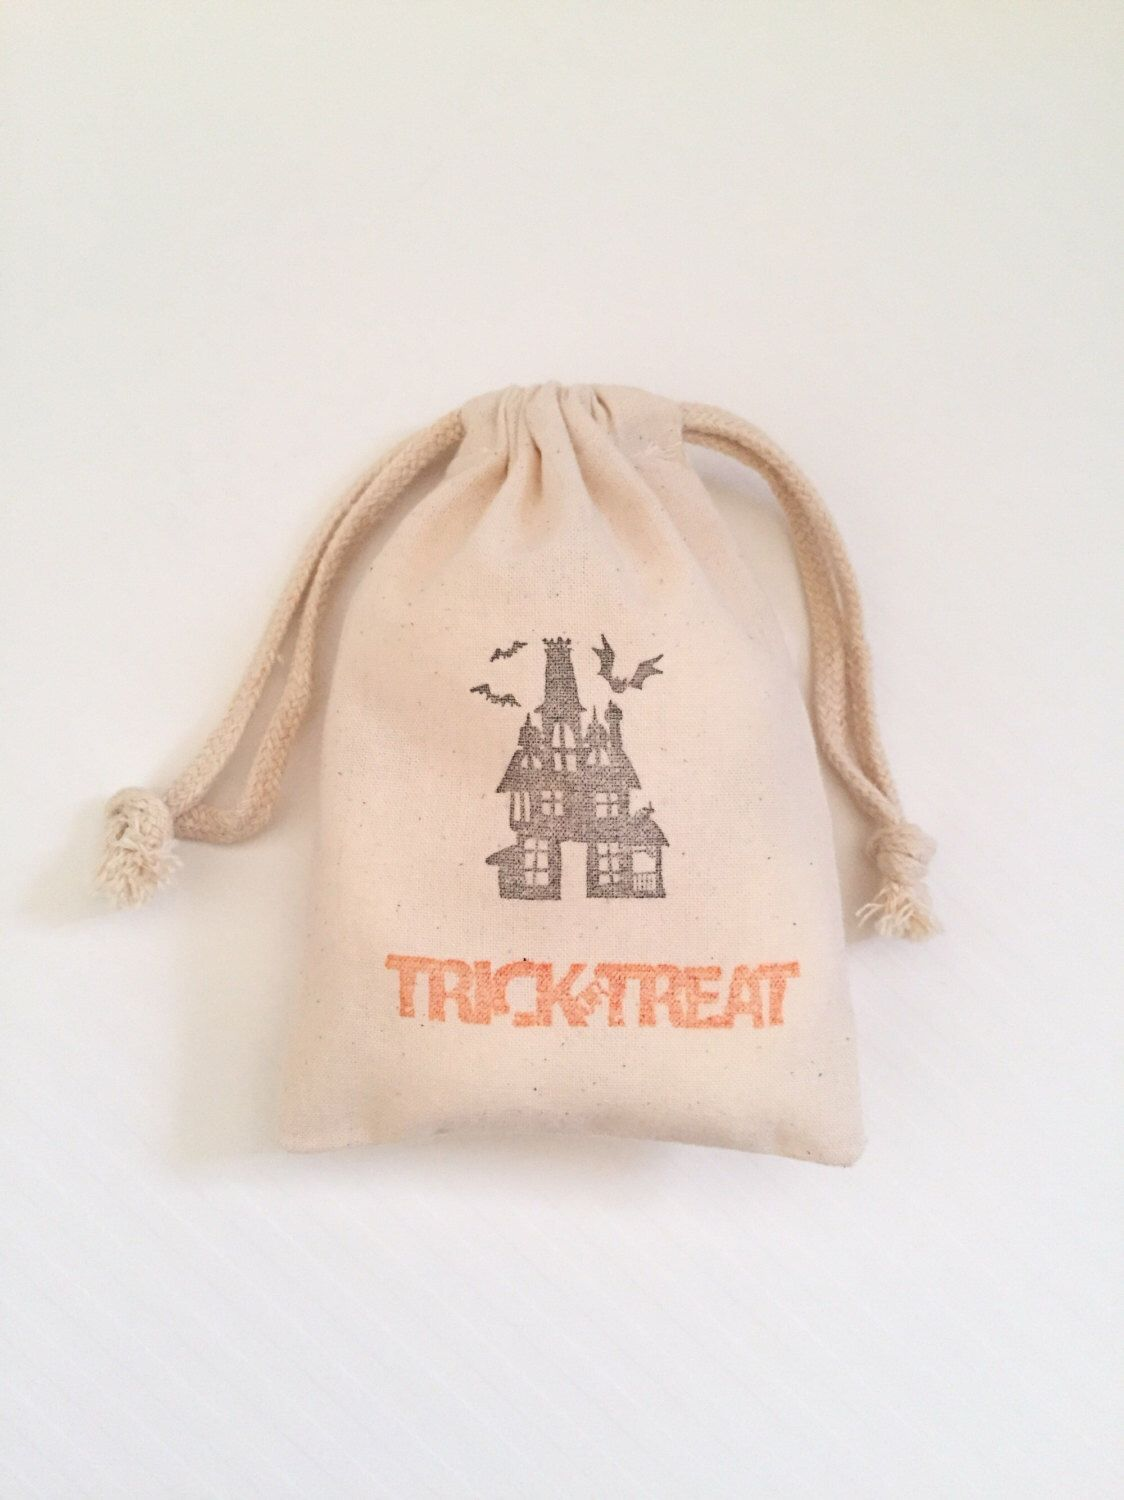 10 Trick or Treat Favors - Halloween Favor Bags - Halloween Party Bags - Halloween Party Favors - Trick or Treat Bags - Halloween Favors by FlowsFavors on Etsy https://www.etsy.com/listing/483186629/10-trick-or-treat-favors-halloween-favor